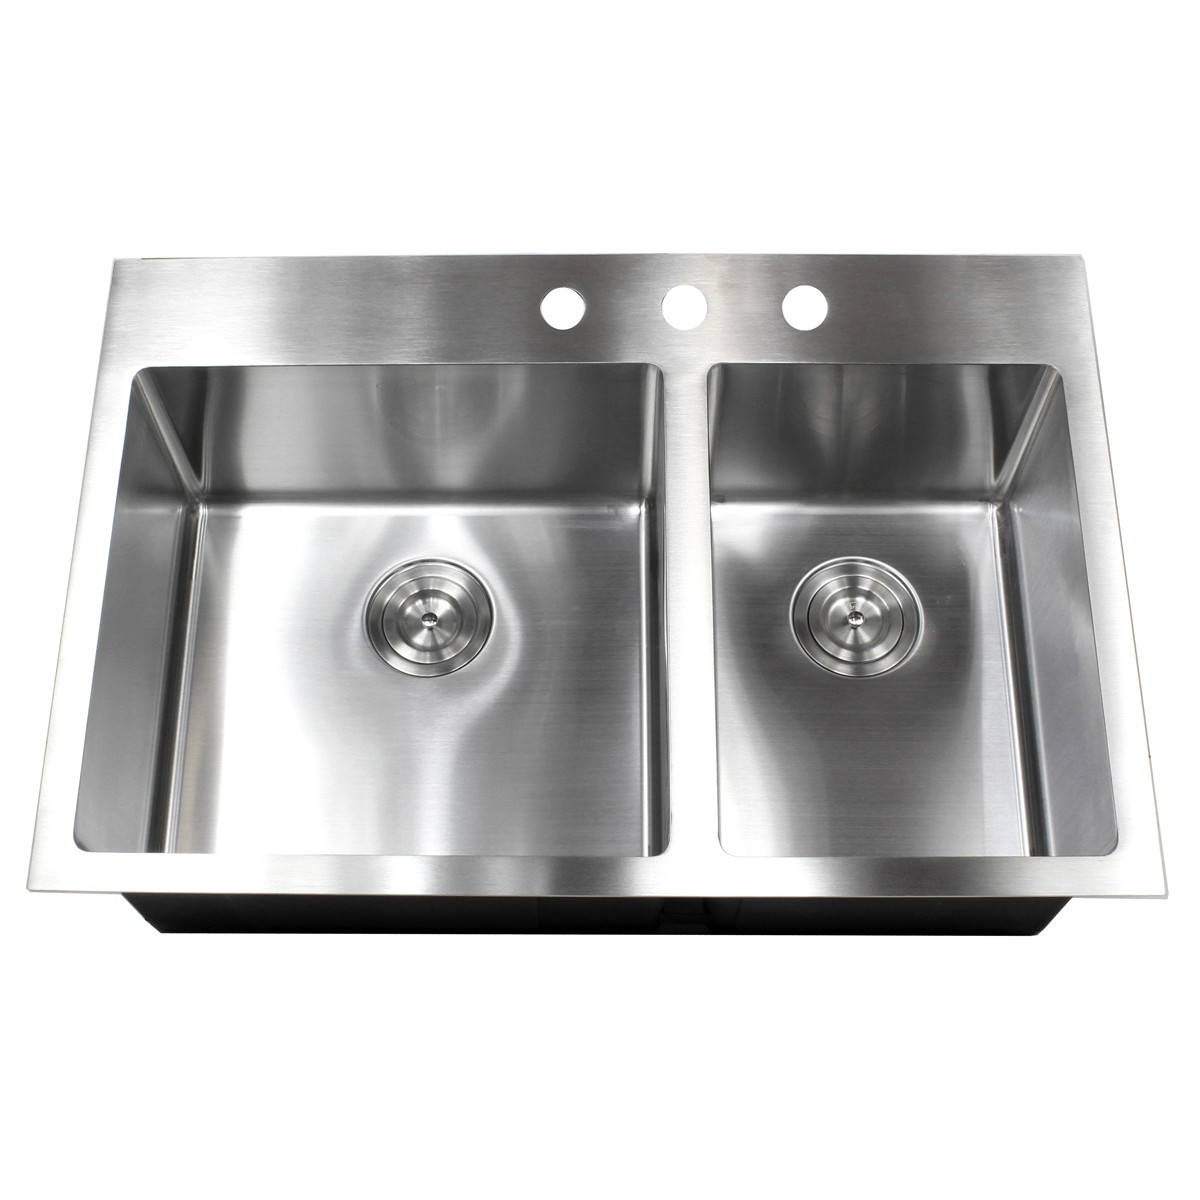 33 Inch Top Mount / Drop In Stainless Steel Double Bowl Kitchen Sink 15mm  Radius Design